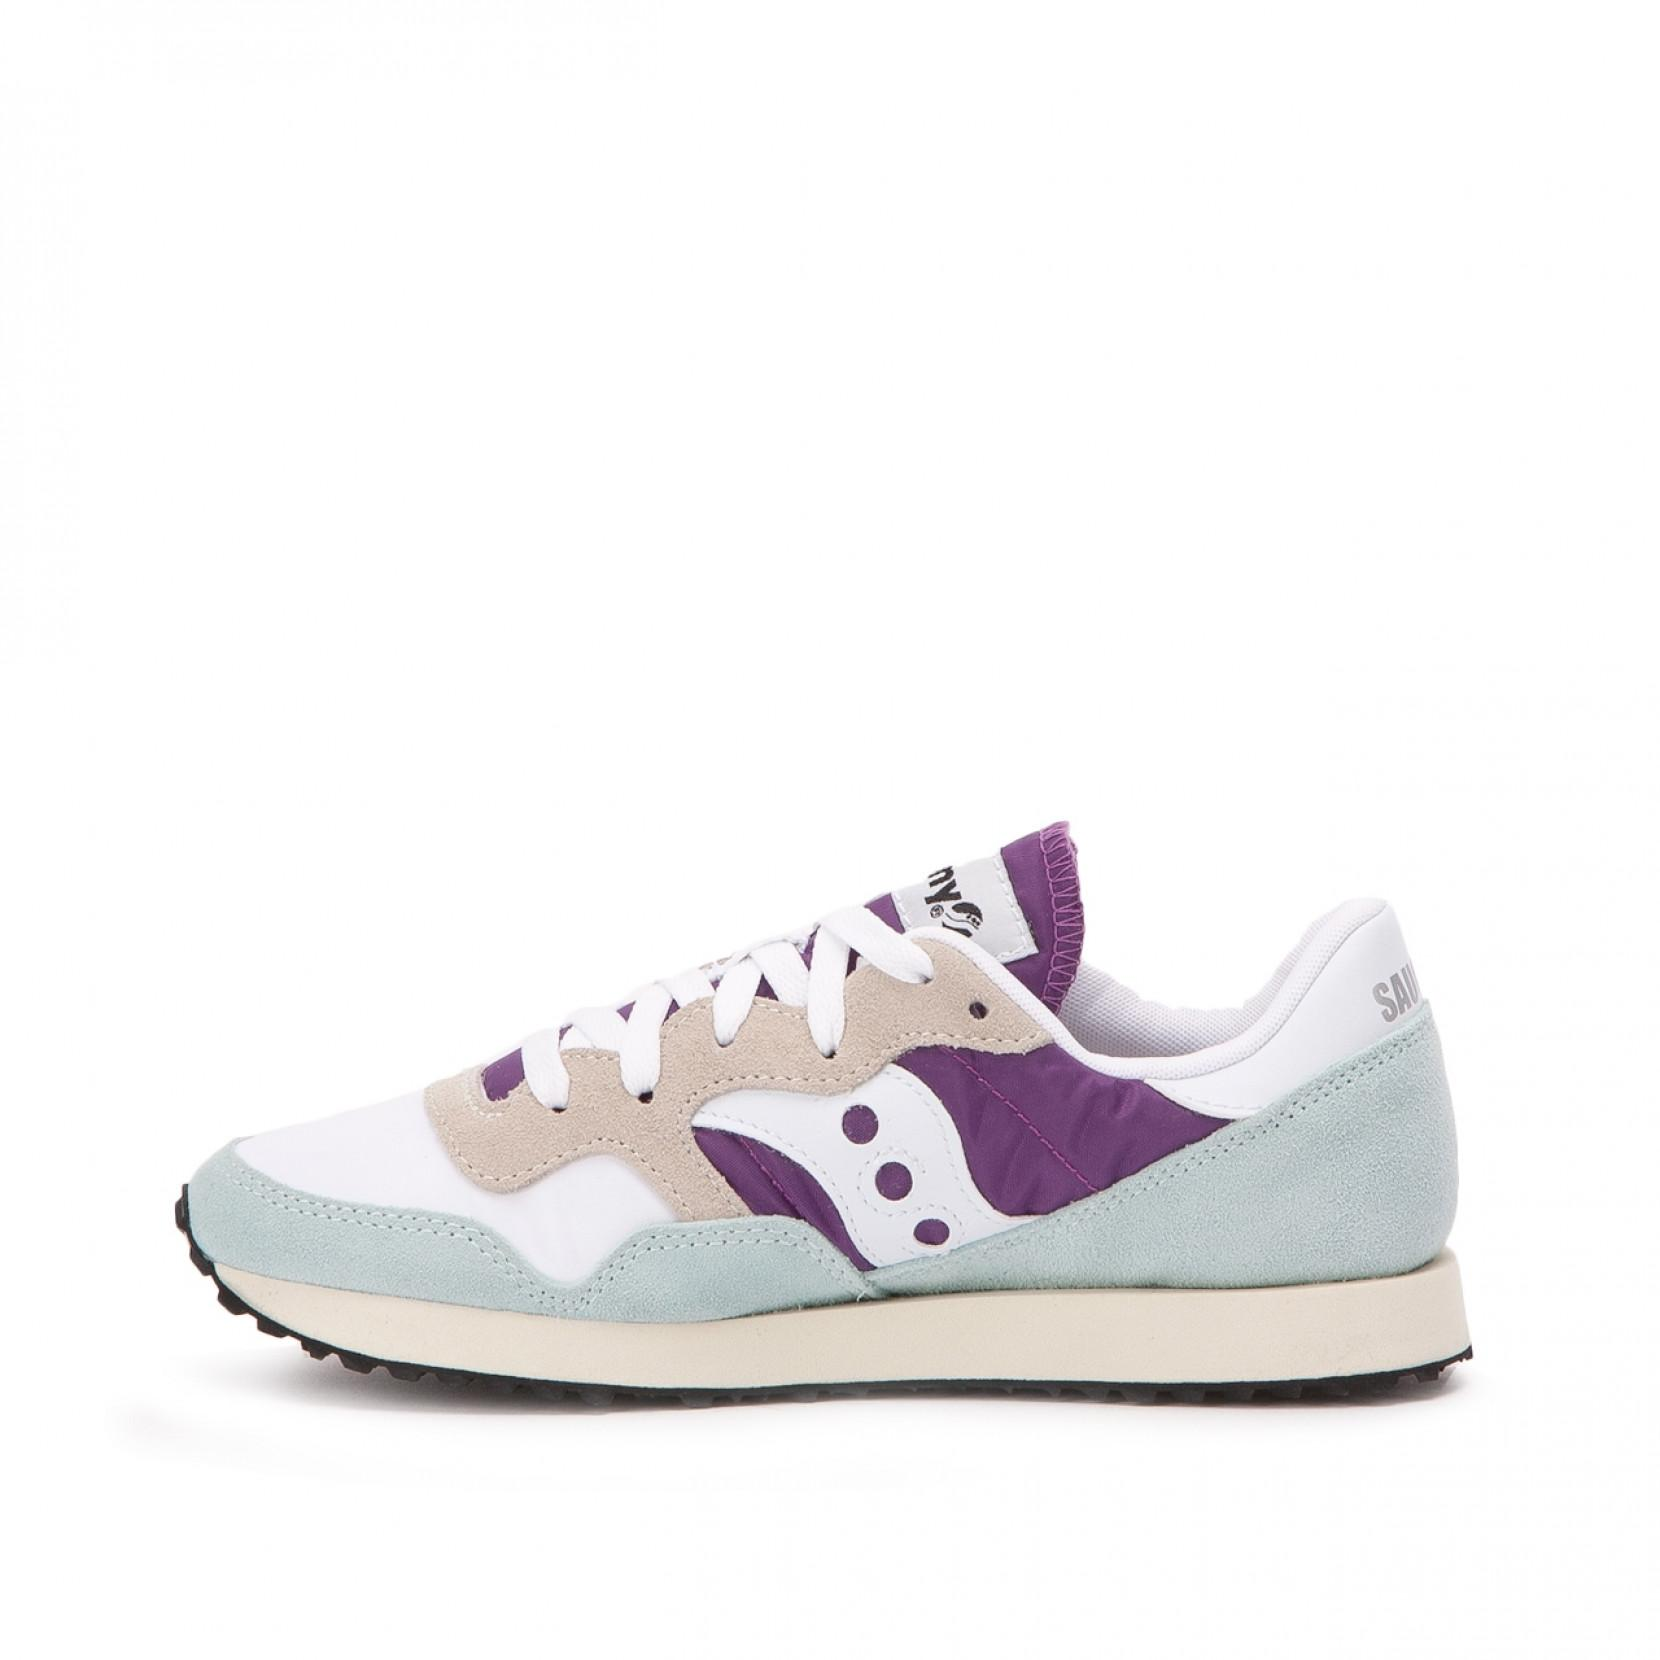 Saucony Synthetic Dxn Trainer Vintage W in White for Men